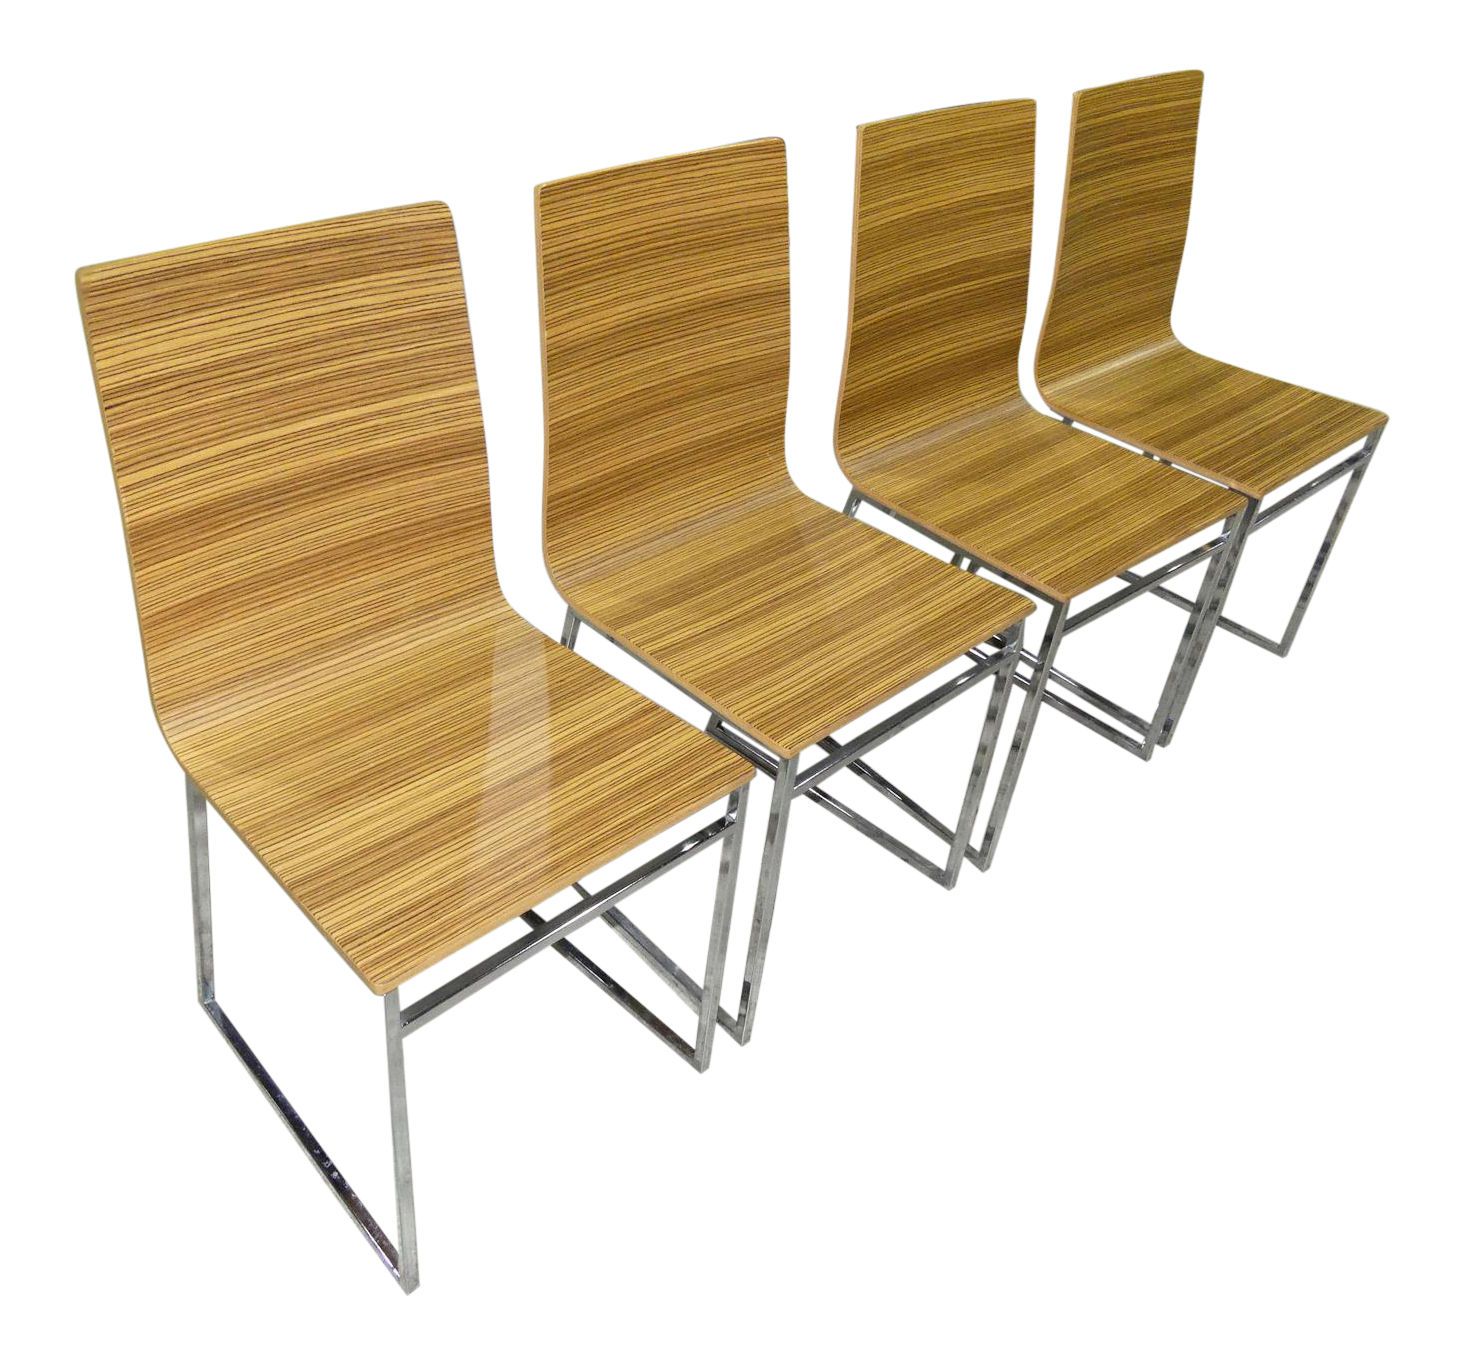 Modern Zebra Wood Chairs Made in Italy by Biebi